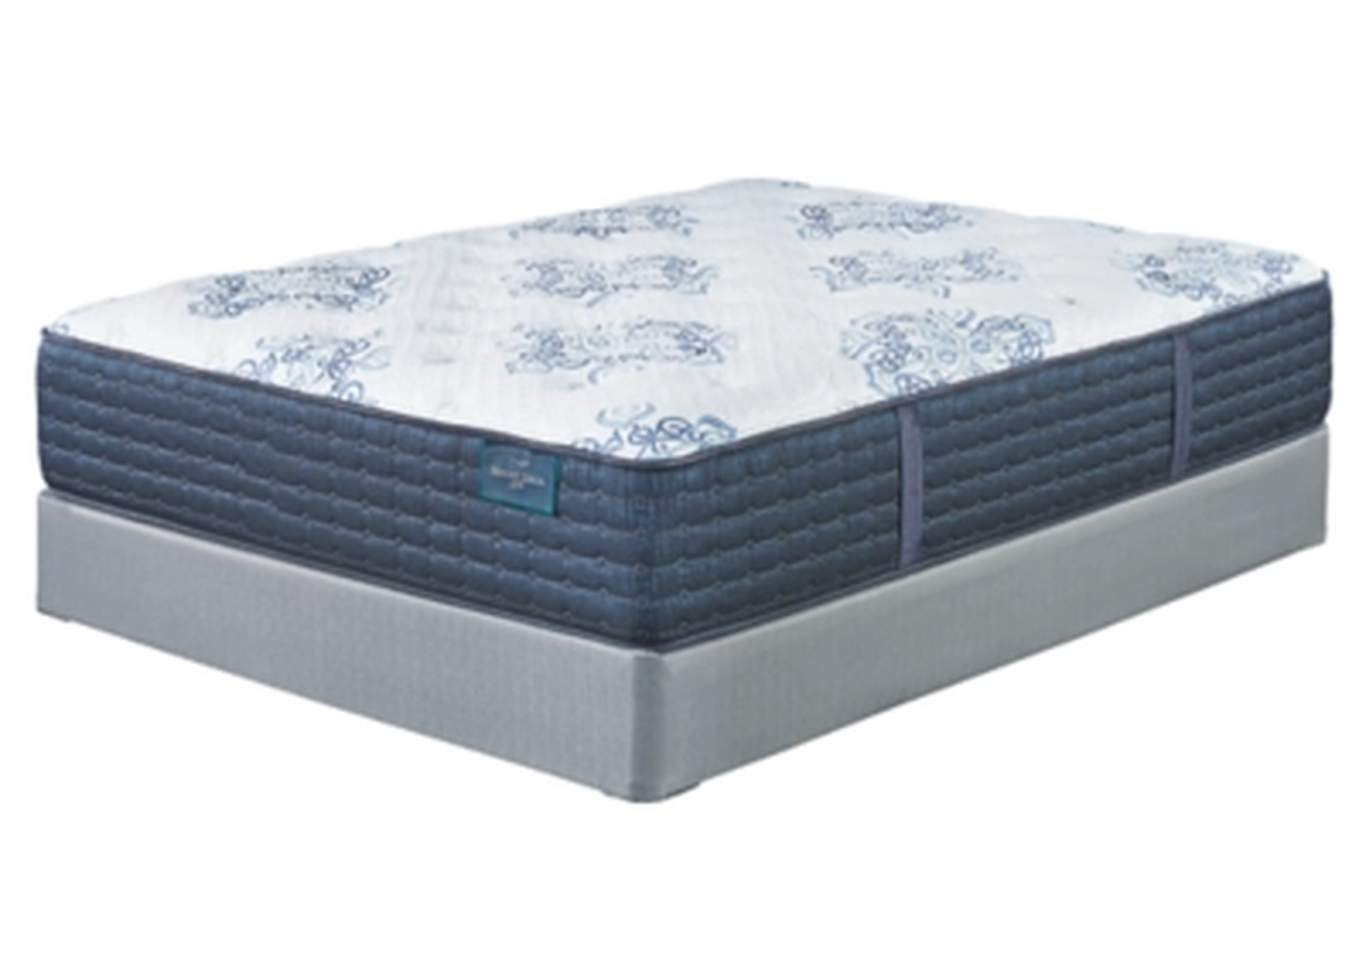 Mount Dana Firm White California King Mattress,Sierra Sleep by Ashley